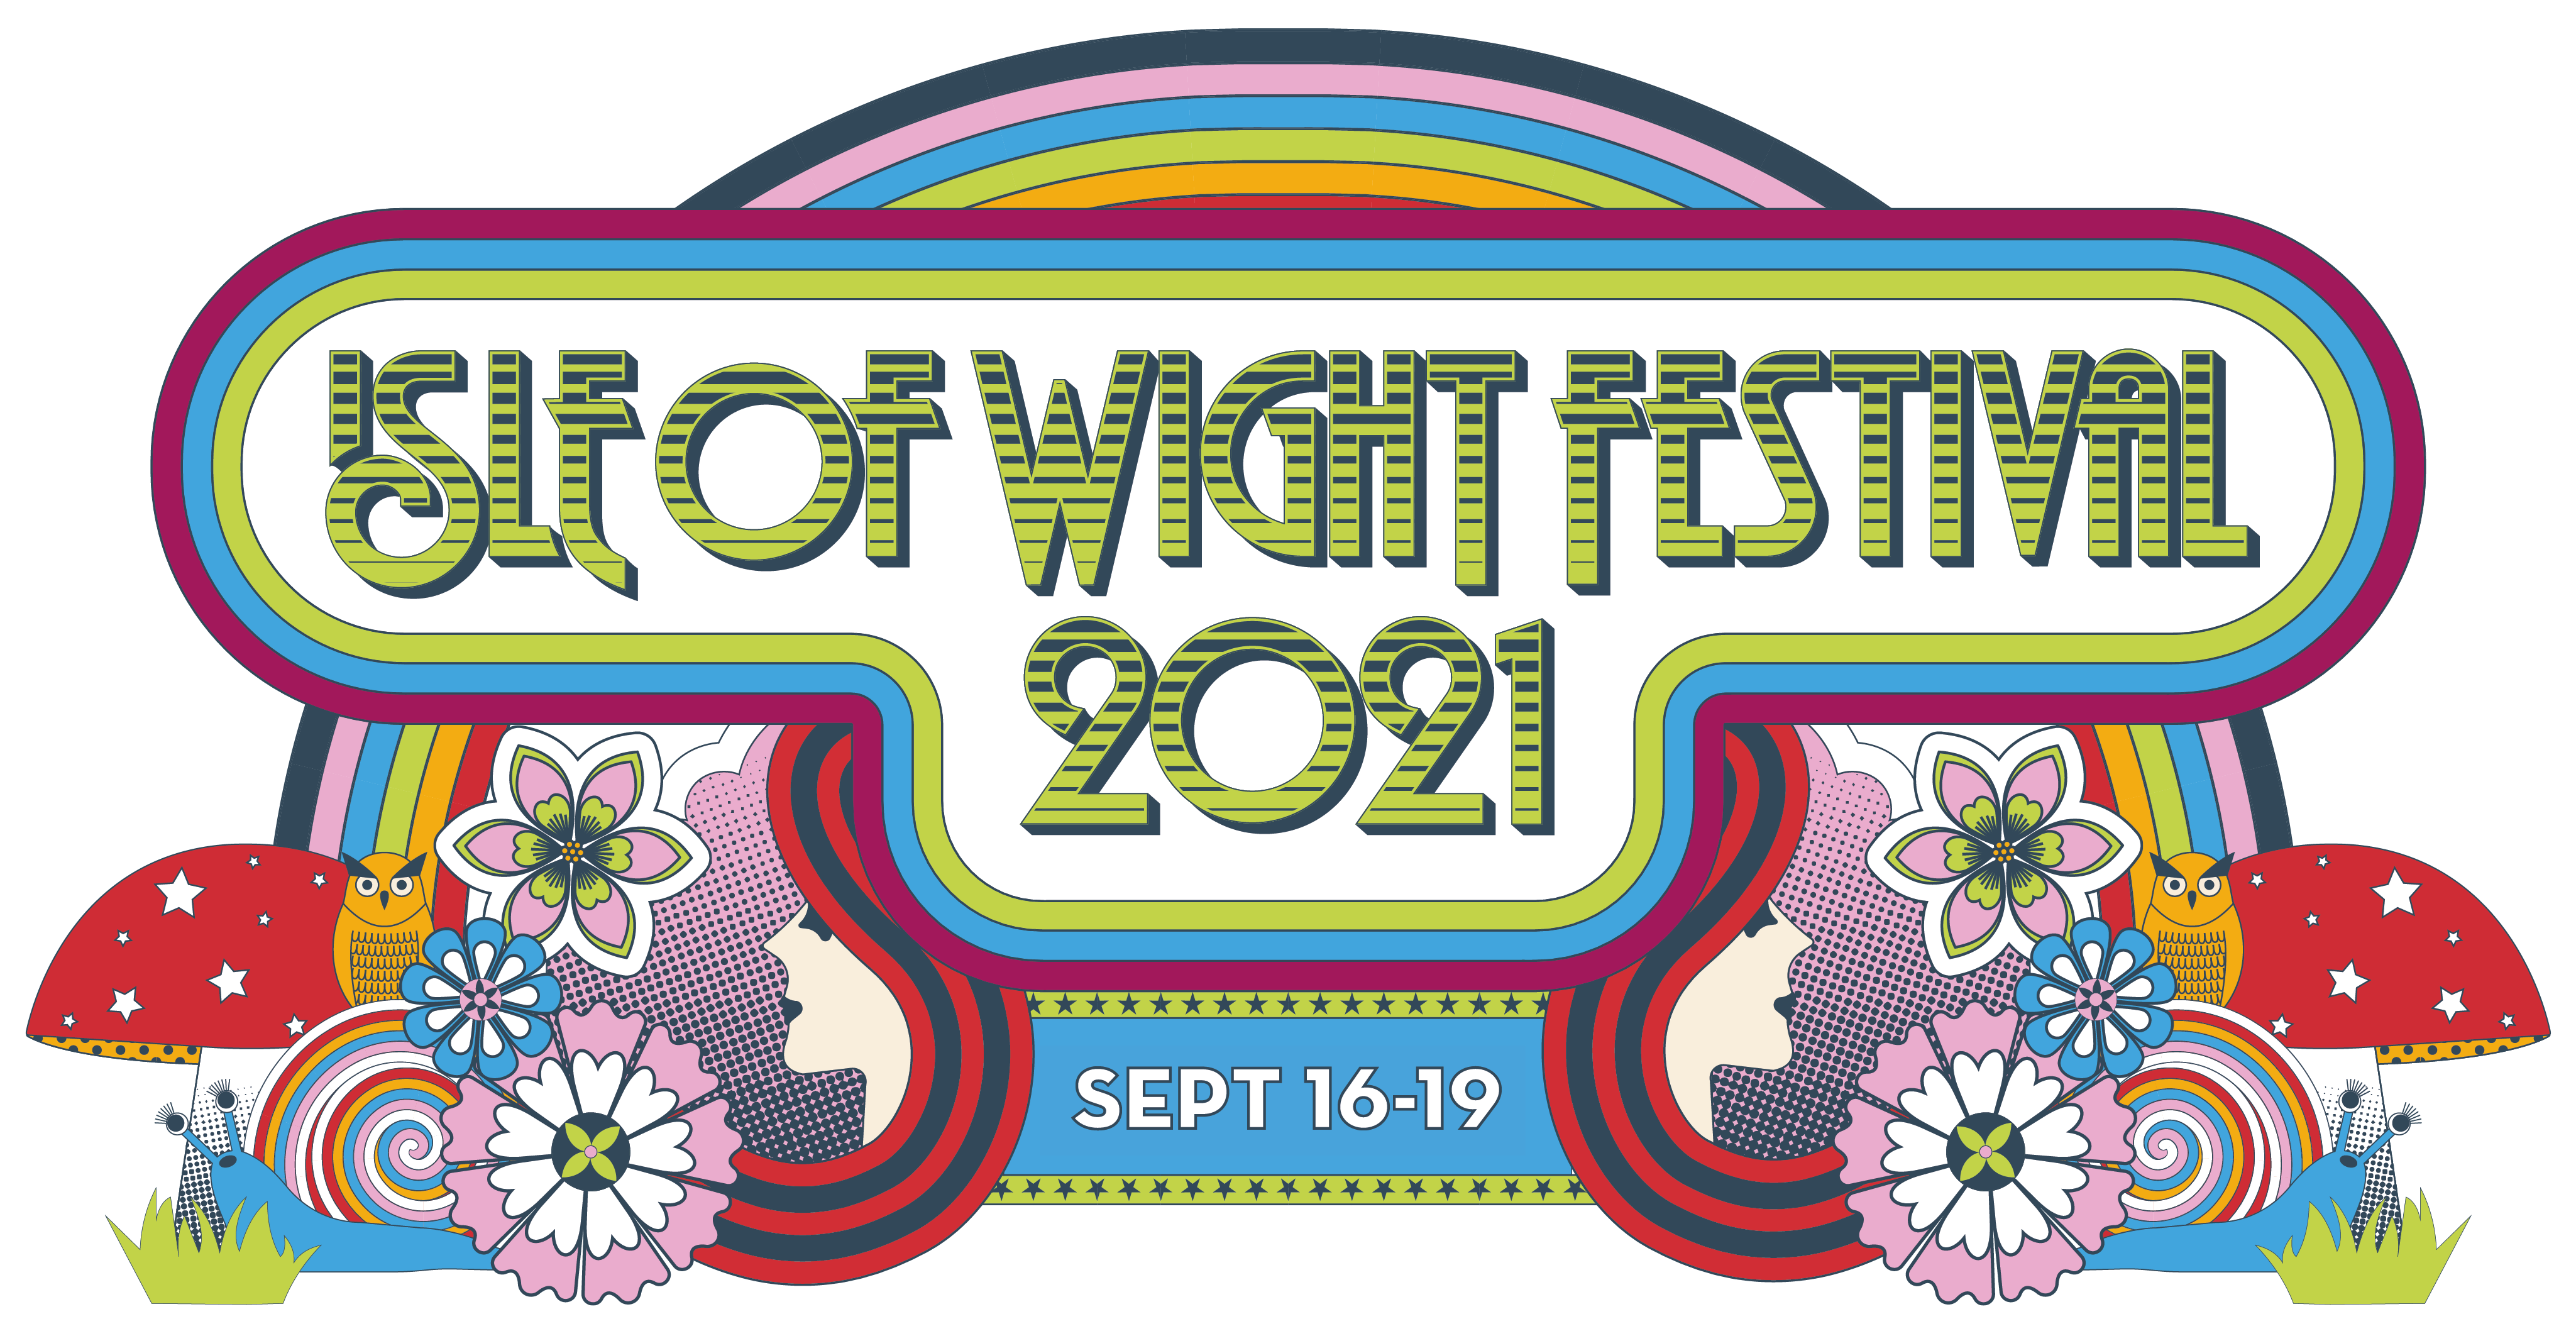 Isle of wight festival 2021 Sept 16 19